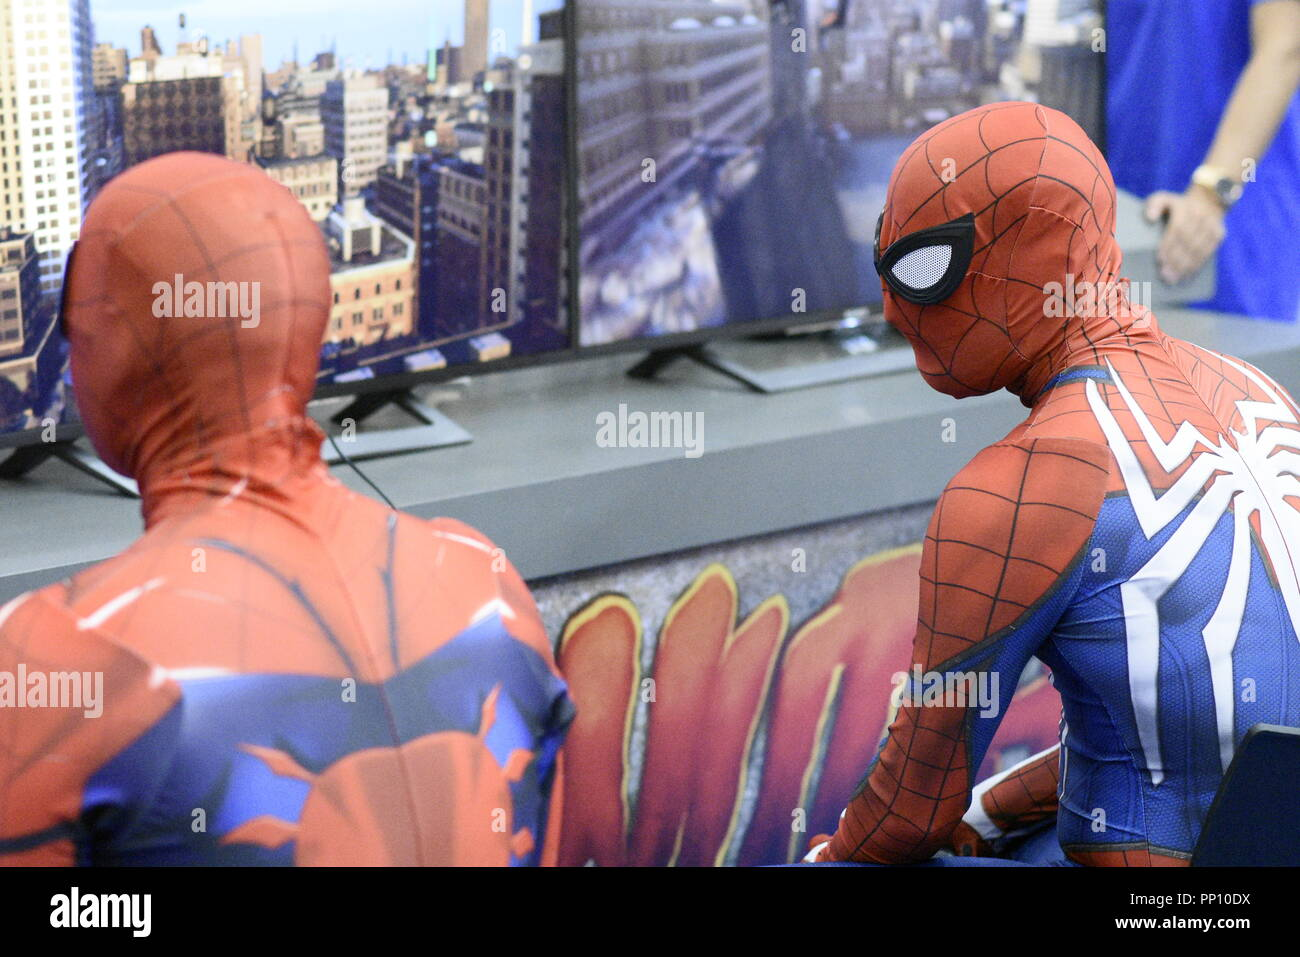 Madrid, Spain21 September 2018. Several actors disguised as Spider-man play the new game for the Playstation PS4 in the Heroes Comic Con in Madrid, Spain Credit: EnriquePSans/Alamy Live News - Stock Image